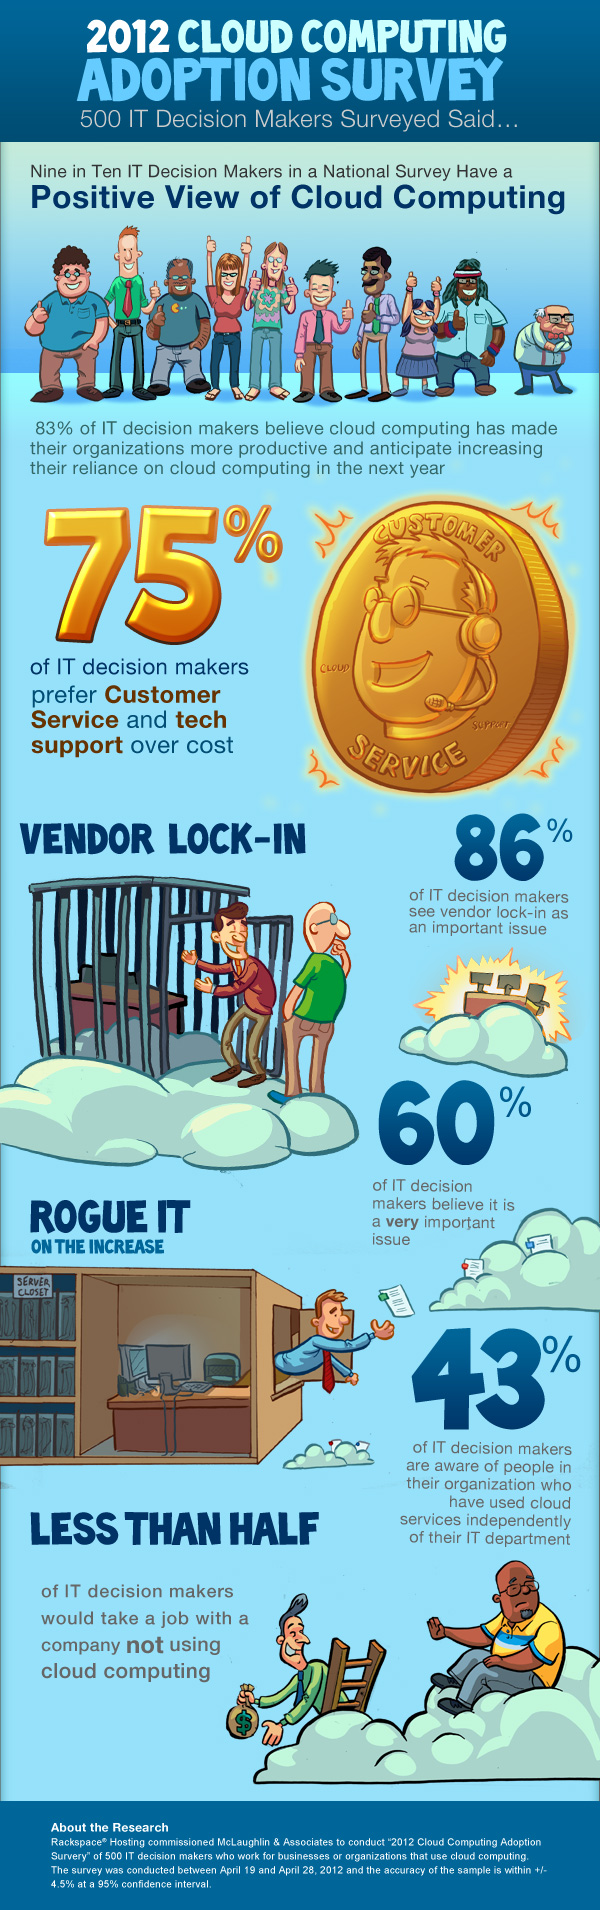 Rackspace® — Rogue IT, Cloud Lock-In Dominate Cloud Concerns [INFOGRAPHIC]